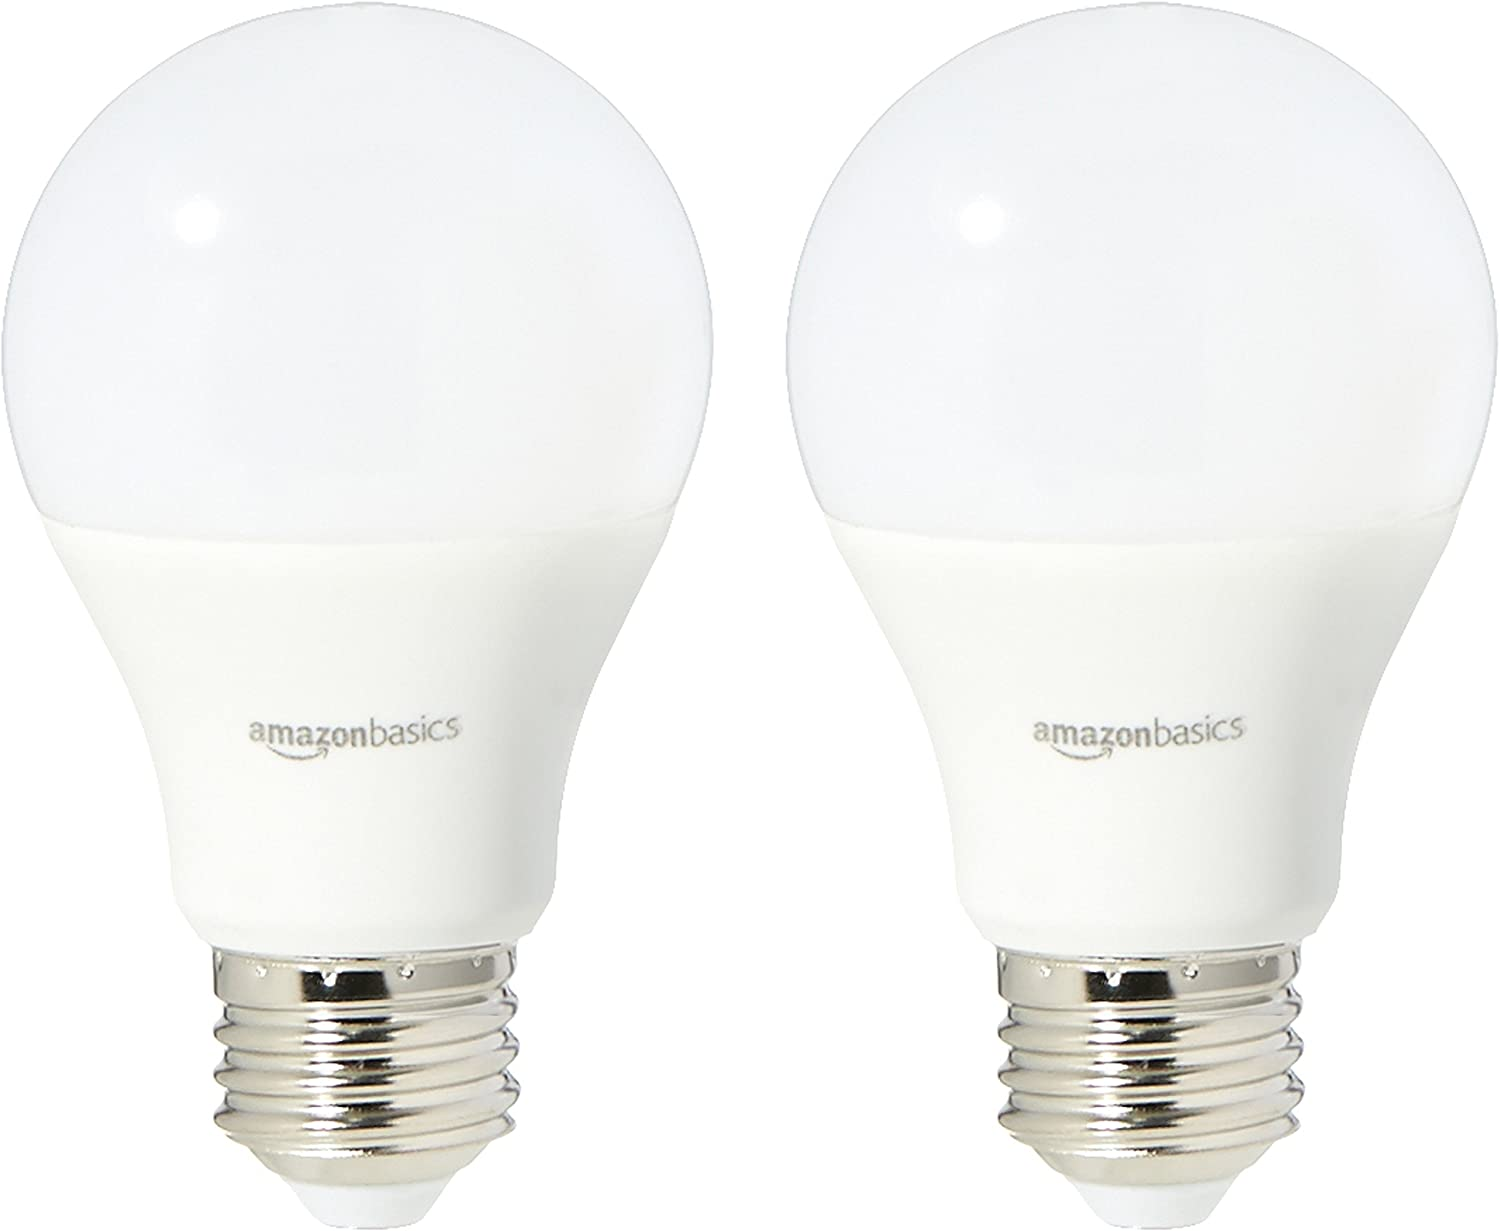 AmazonBasics 60 Watt Equivalent, Daylight, Non-Dimmable, A19 LED Light Bulb | 2-Pack